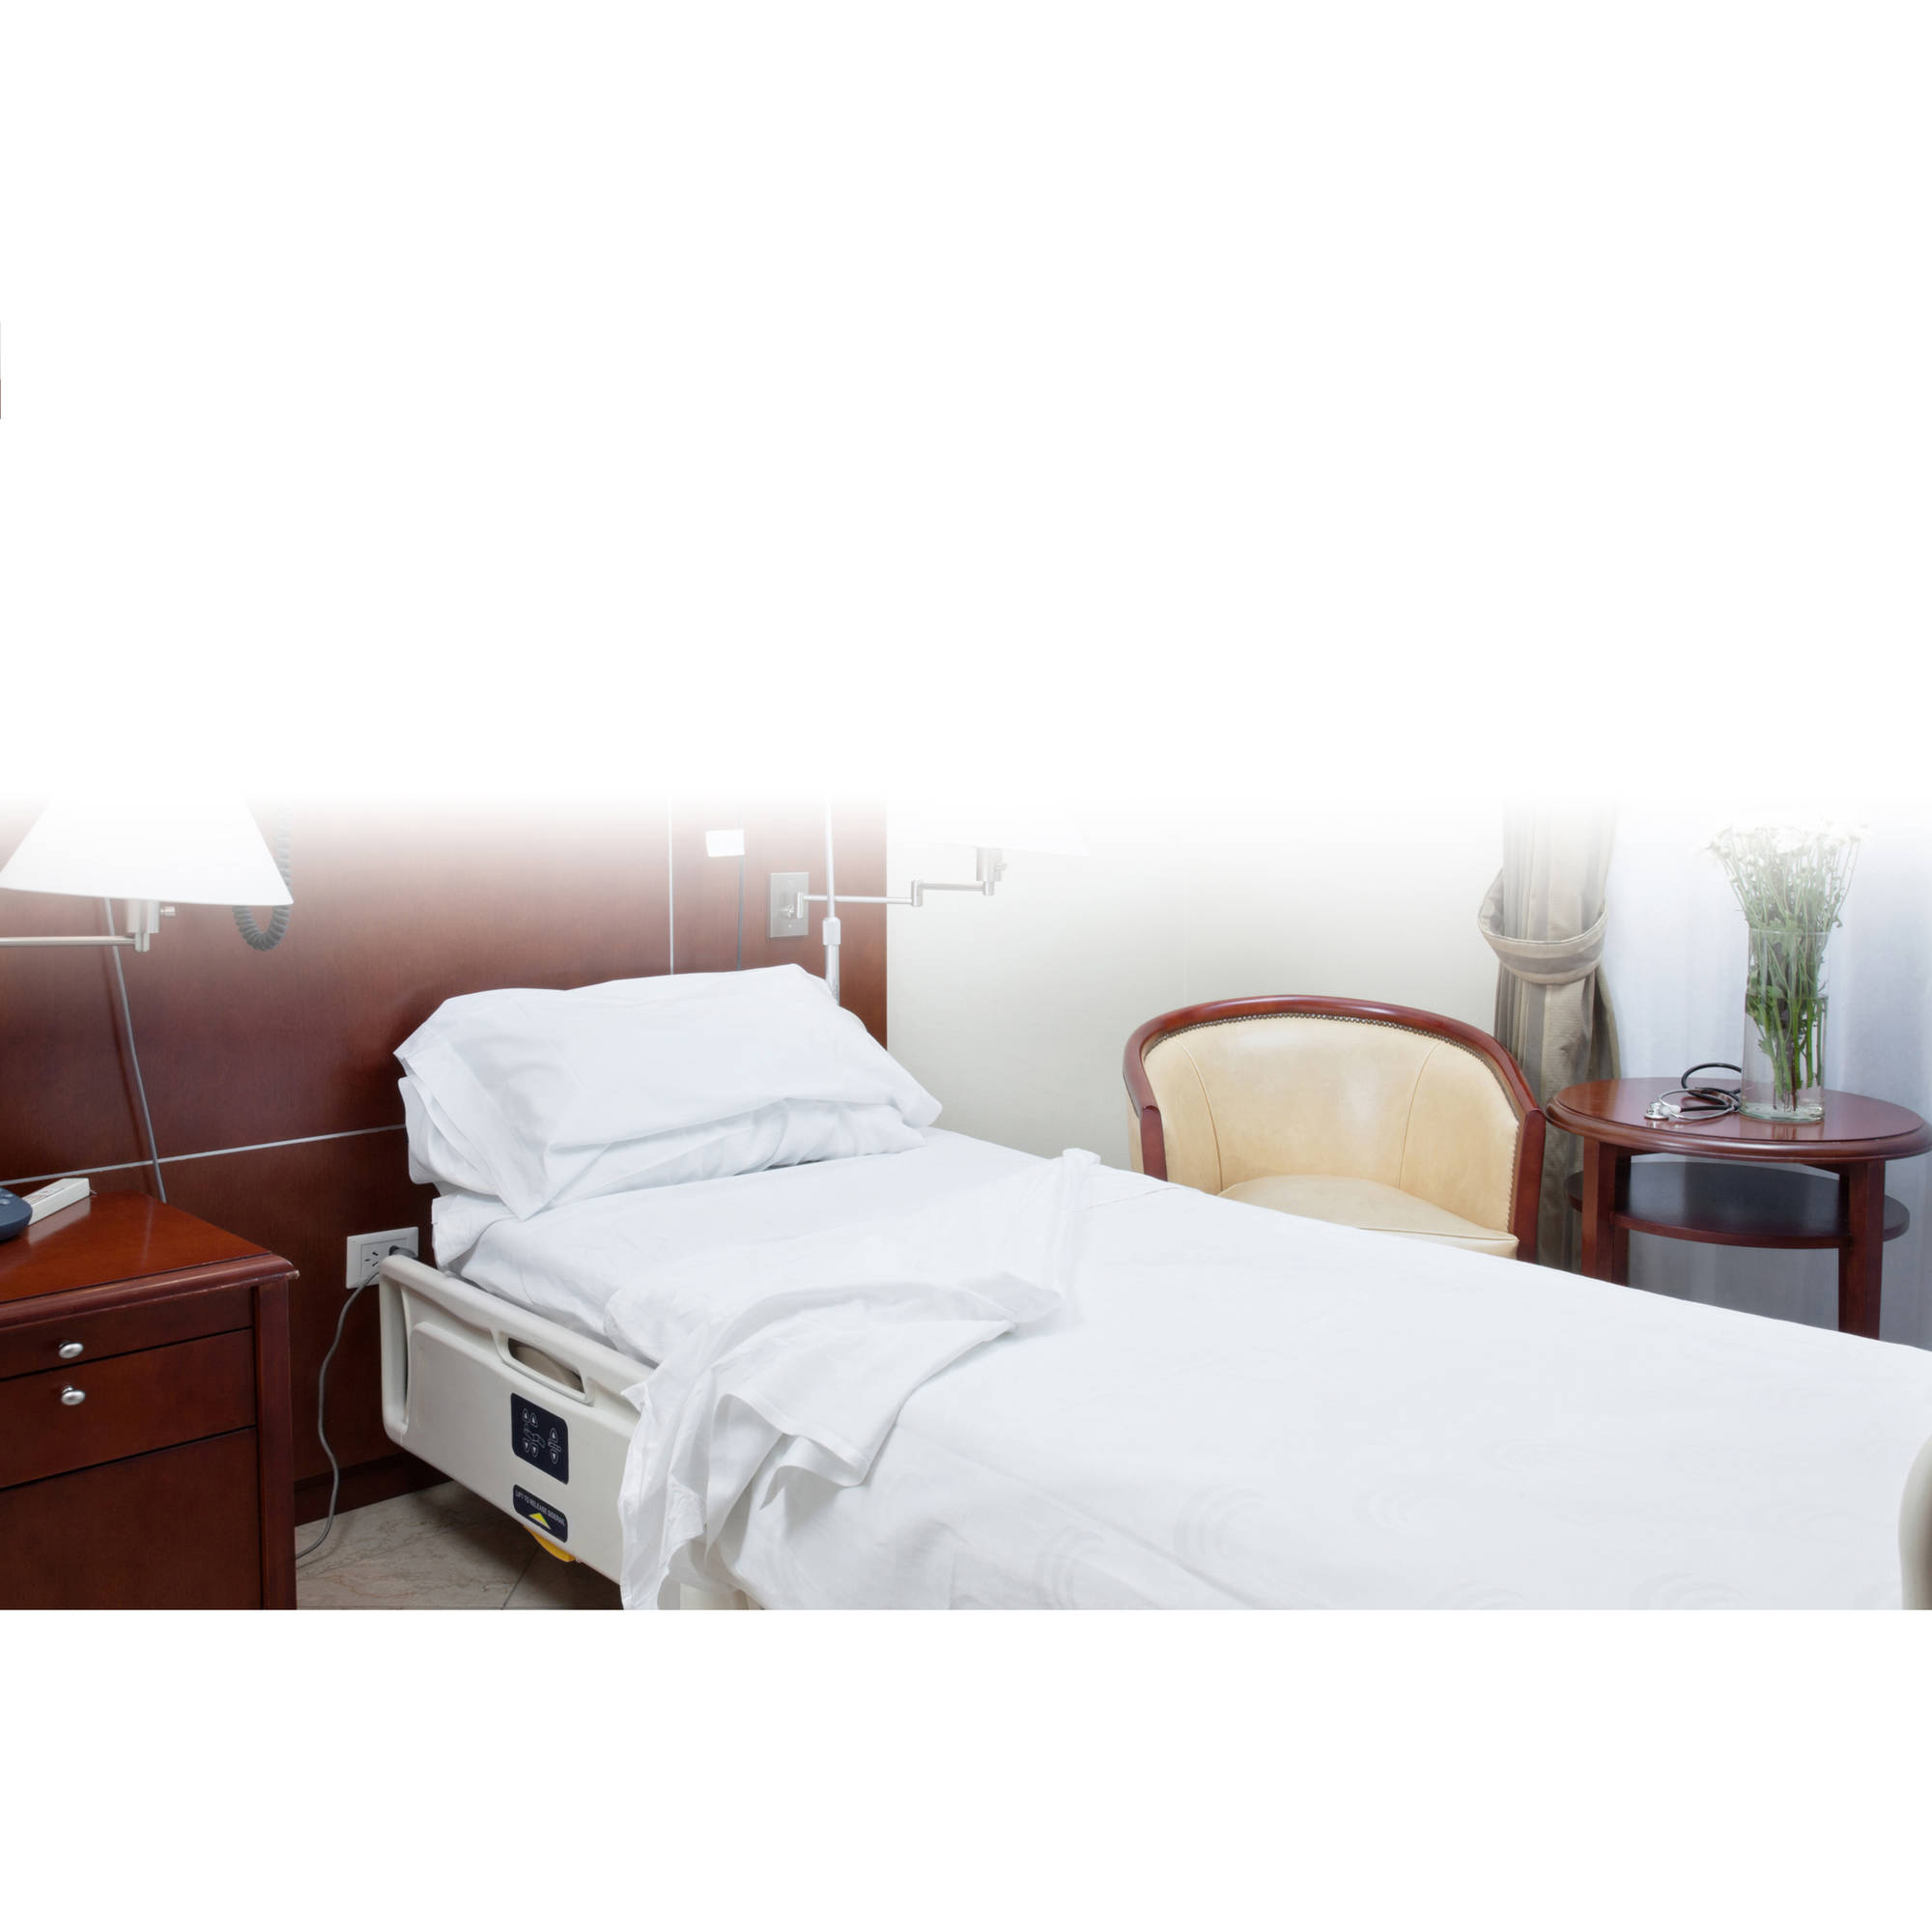 Deluxe Hospital Bed Set